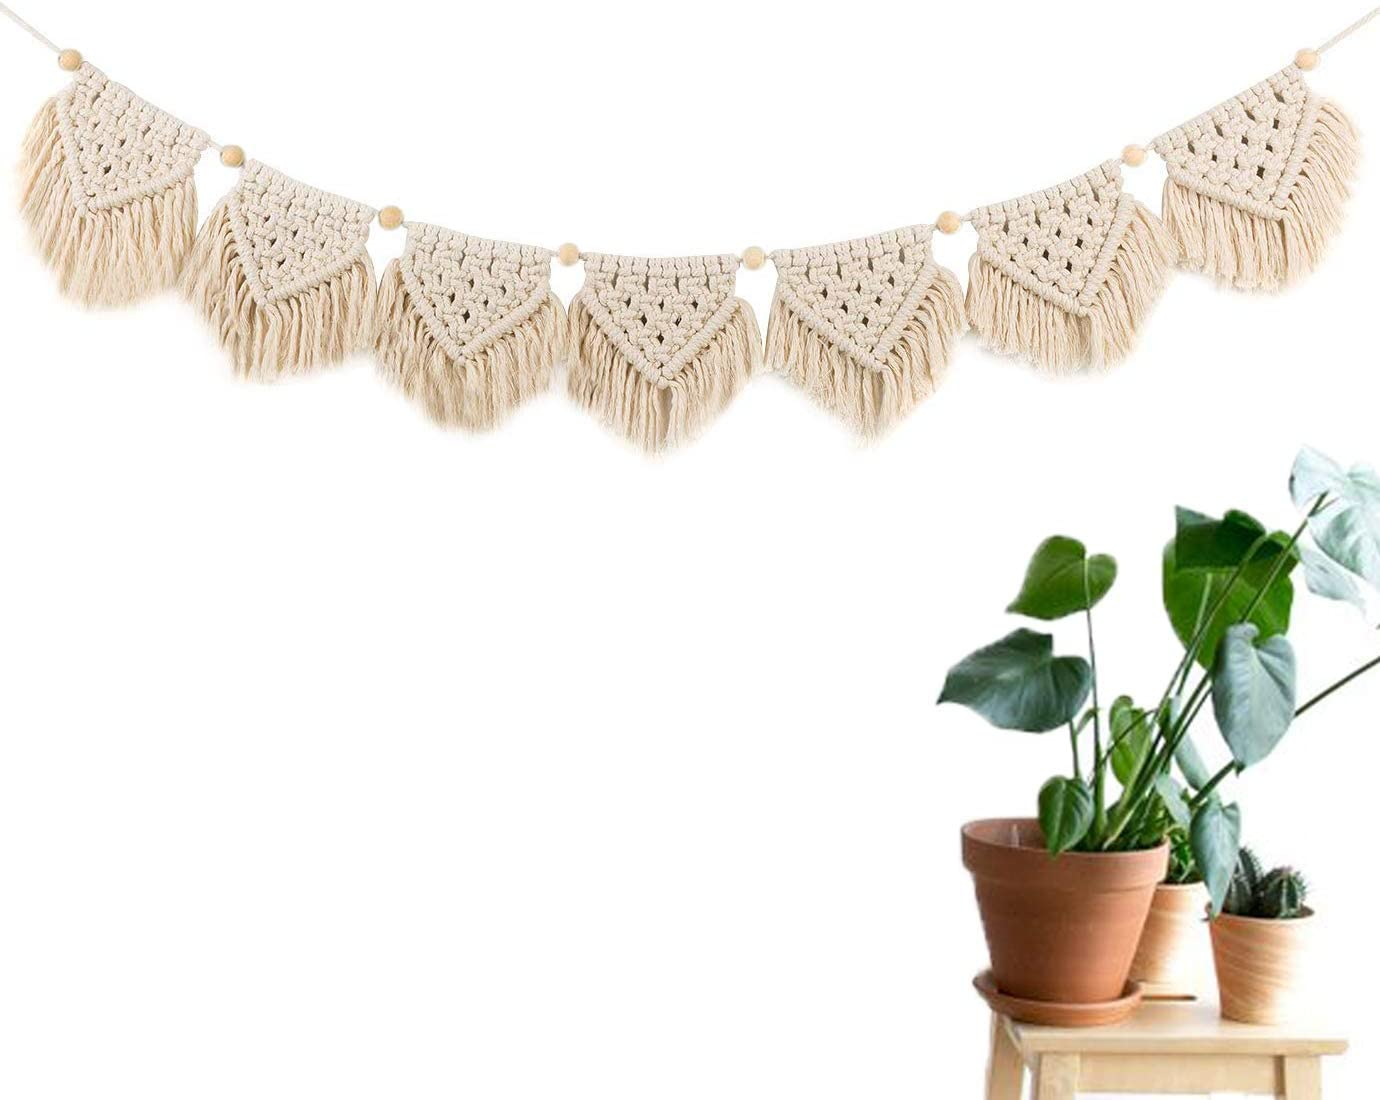 LSHCX Macrame Woven Wall Hanging Fringe Garland Banner – Boho Chic Bohemian Wall Decor – Apartment Dorm Living Room Bedroom Decorative Wall Art, 55 W x 6 H, 7pc Flags